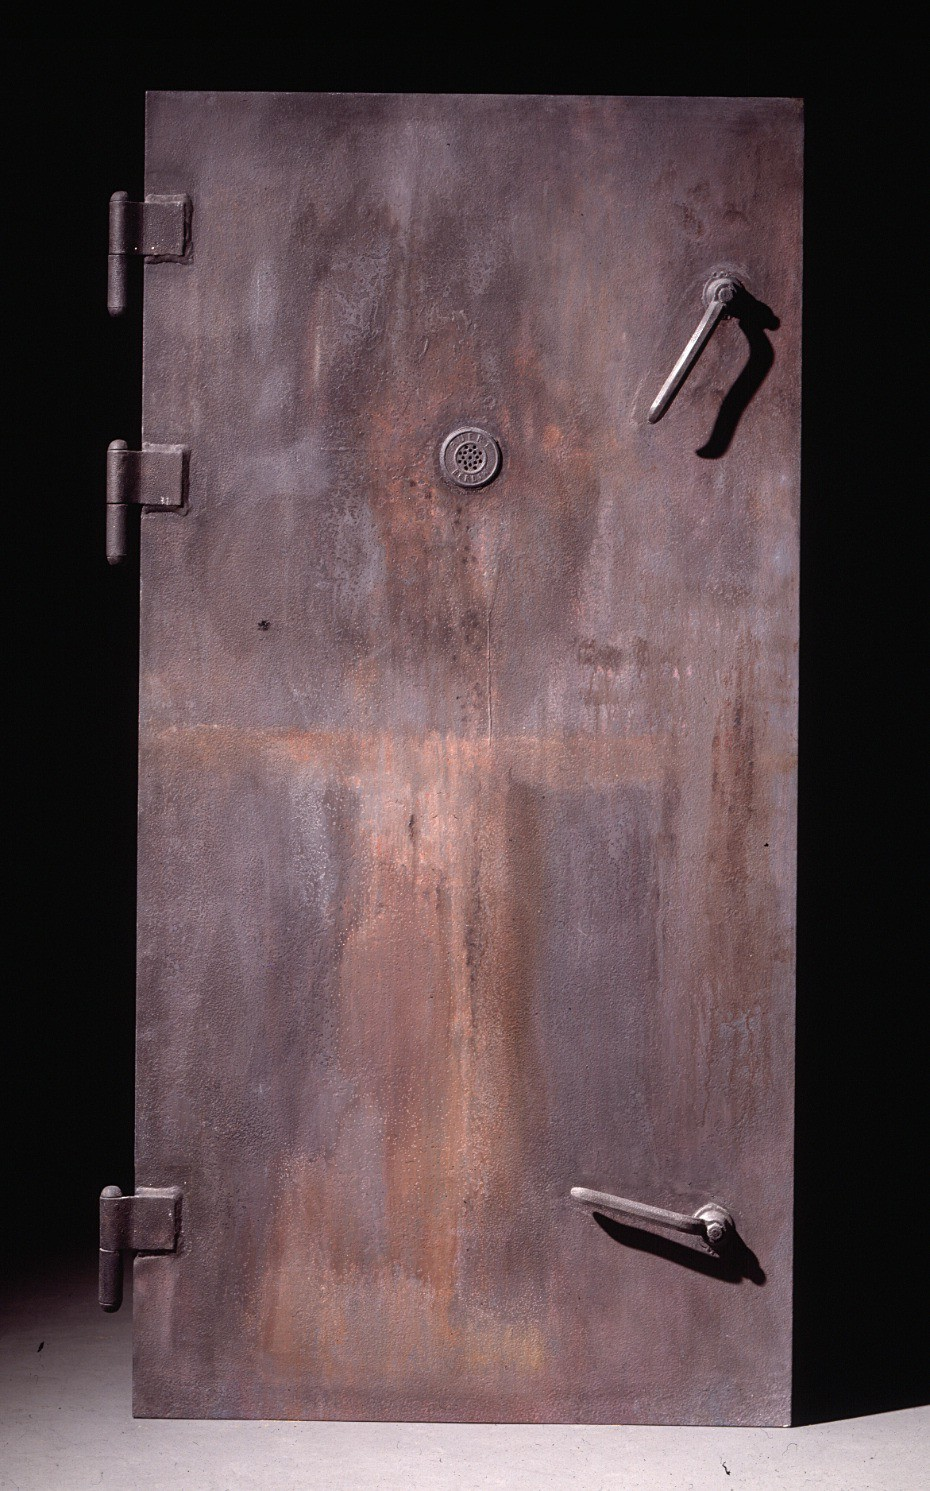 Casting of Majdanek gas chamber door [LCID: 199824np]